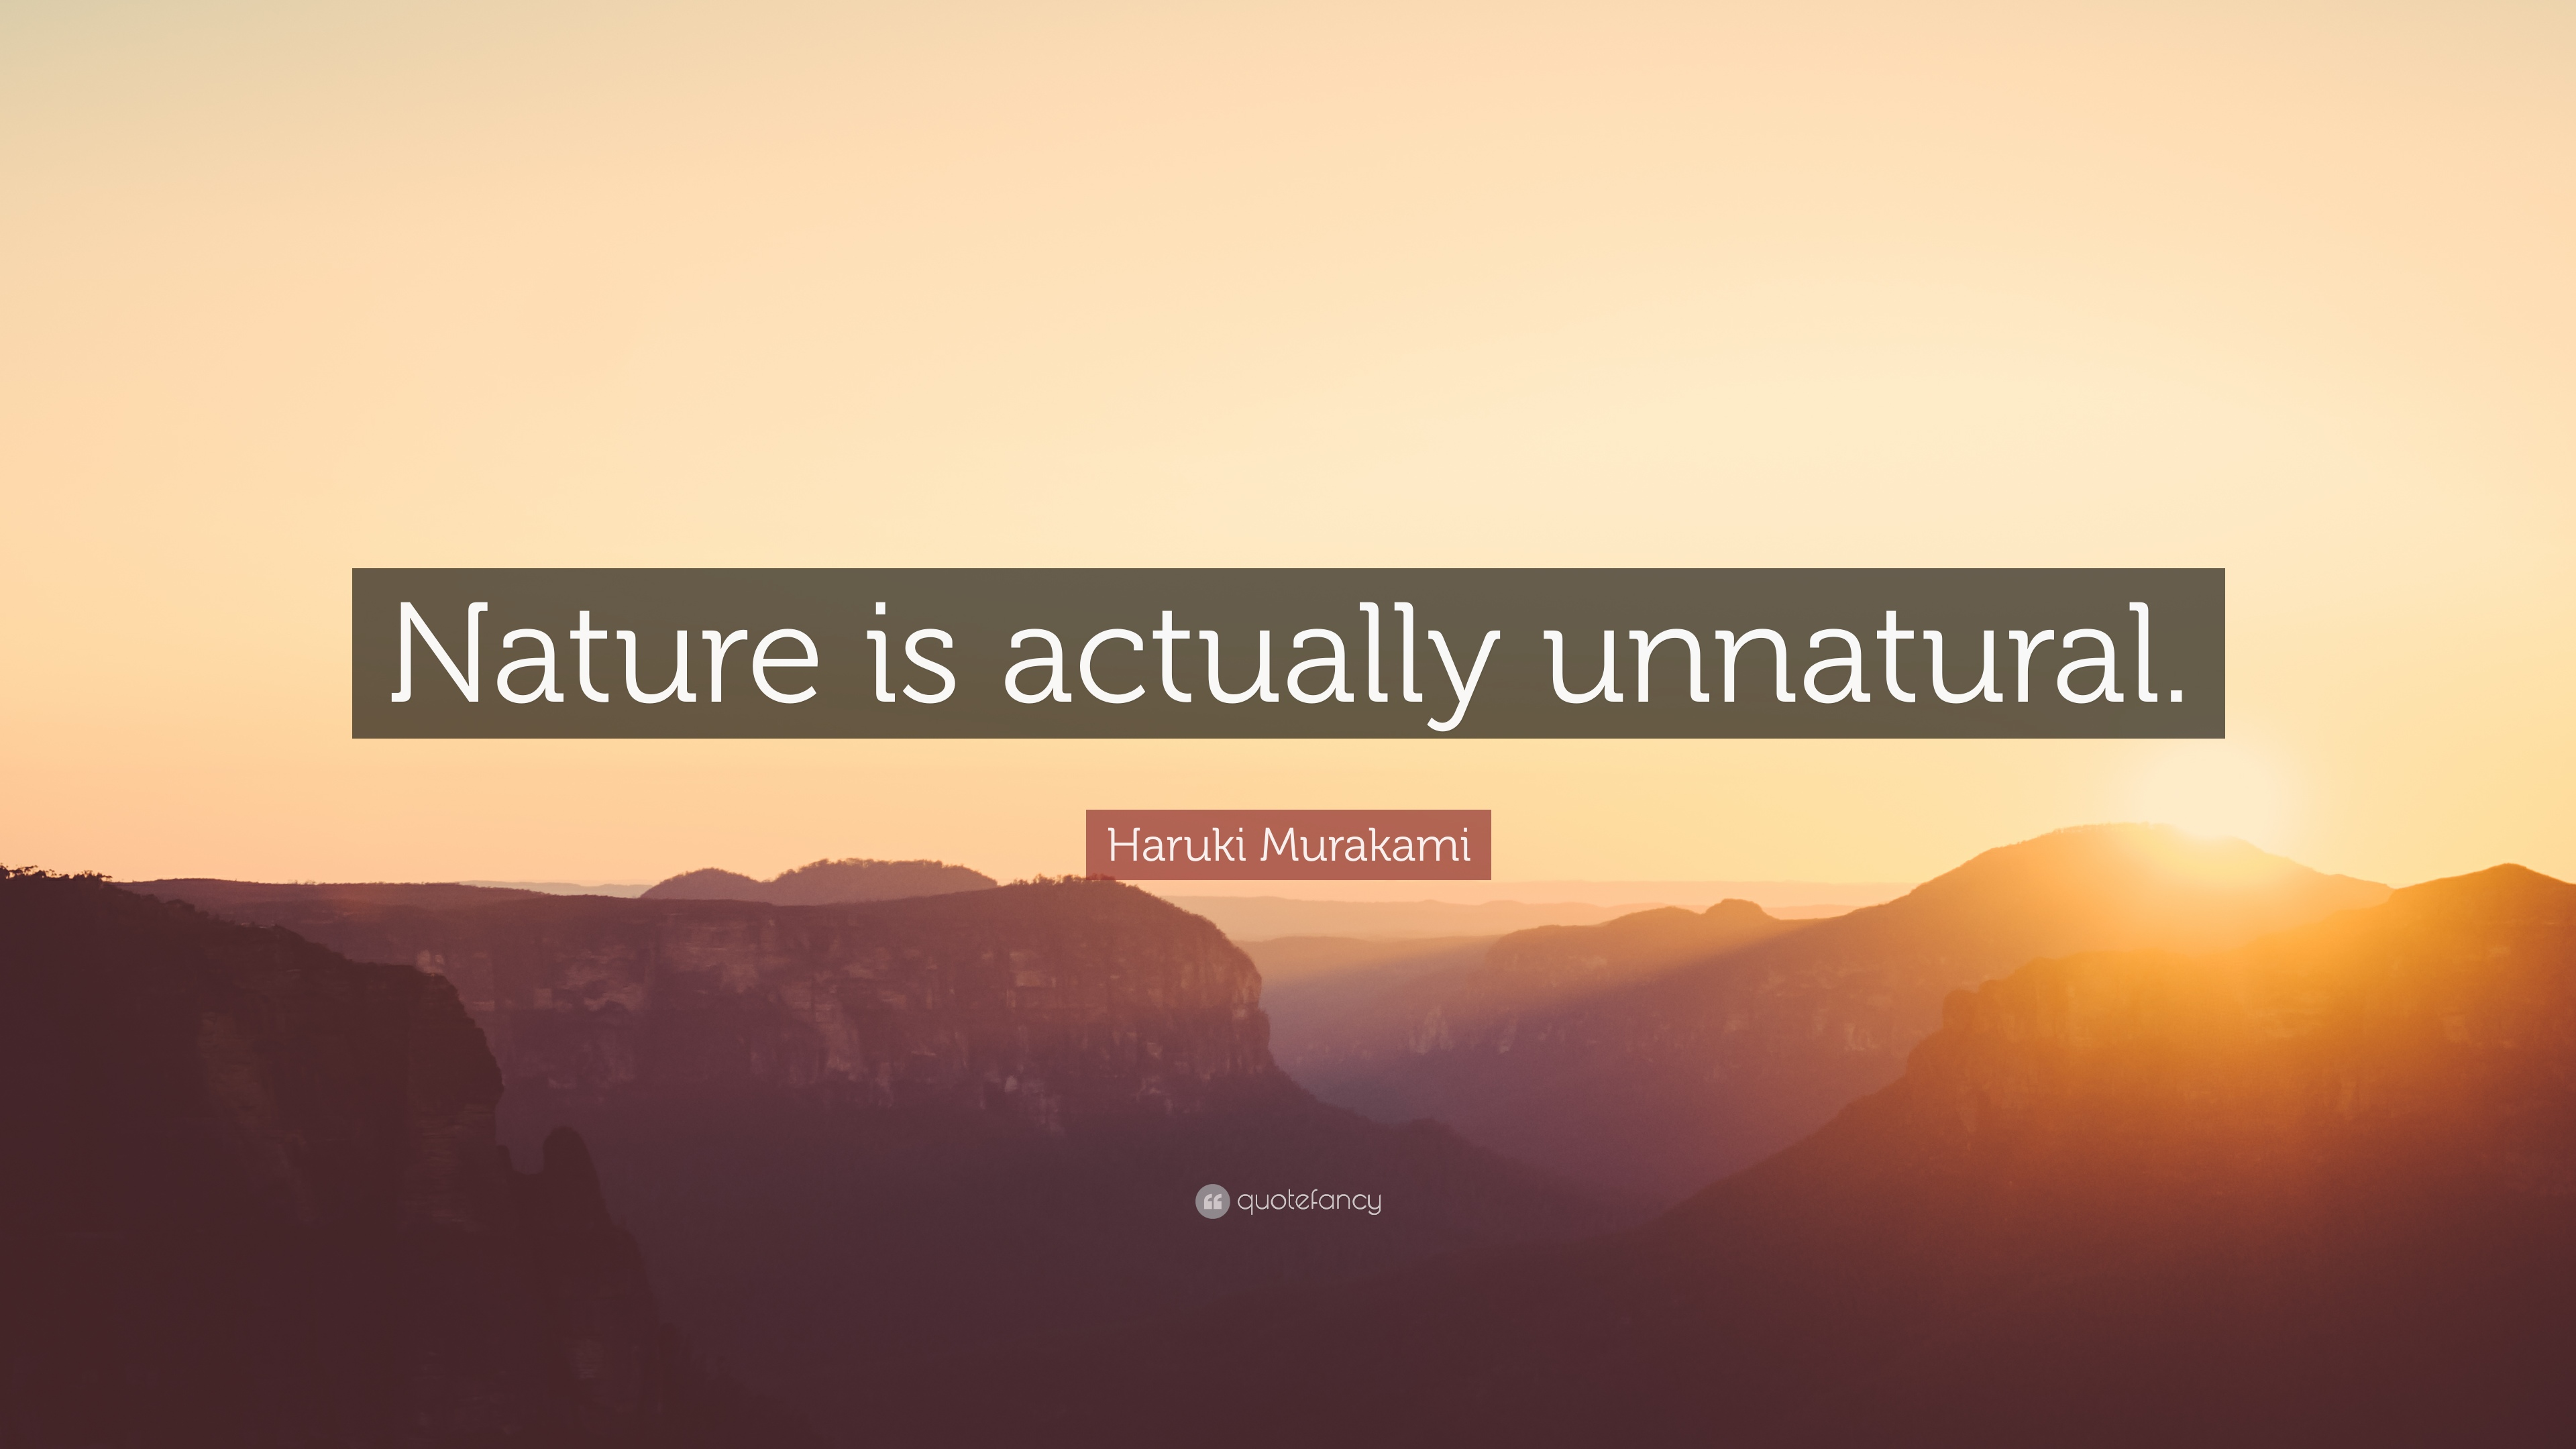 Haruki Murakami Quote Nature Is Actually Unnatural 7 Wallpapers